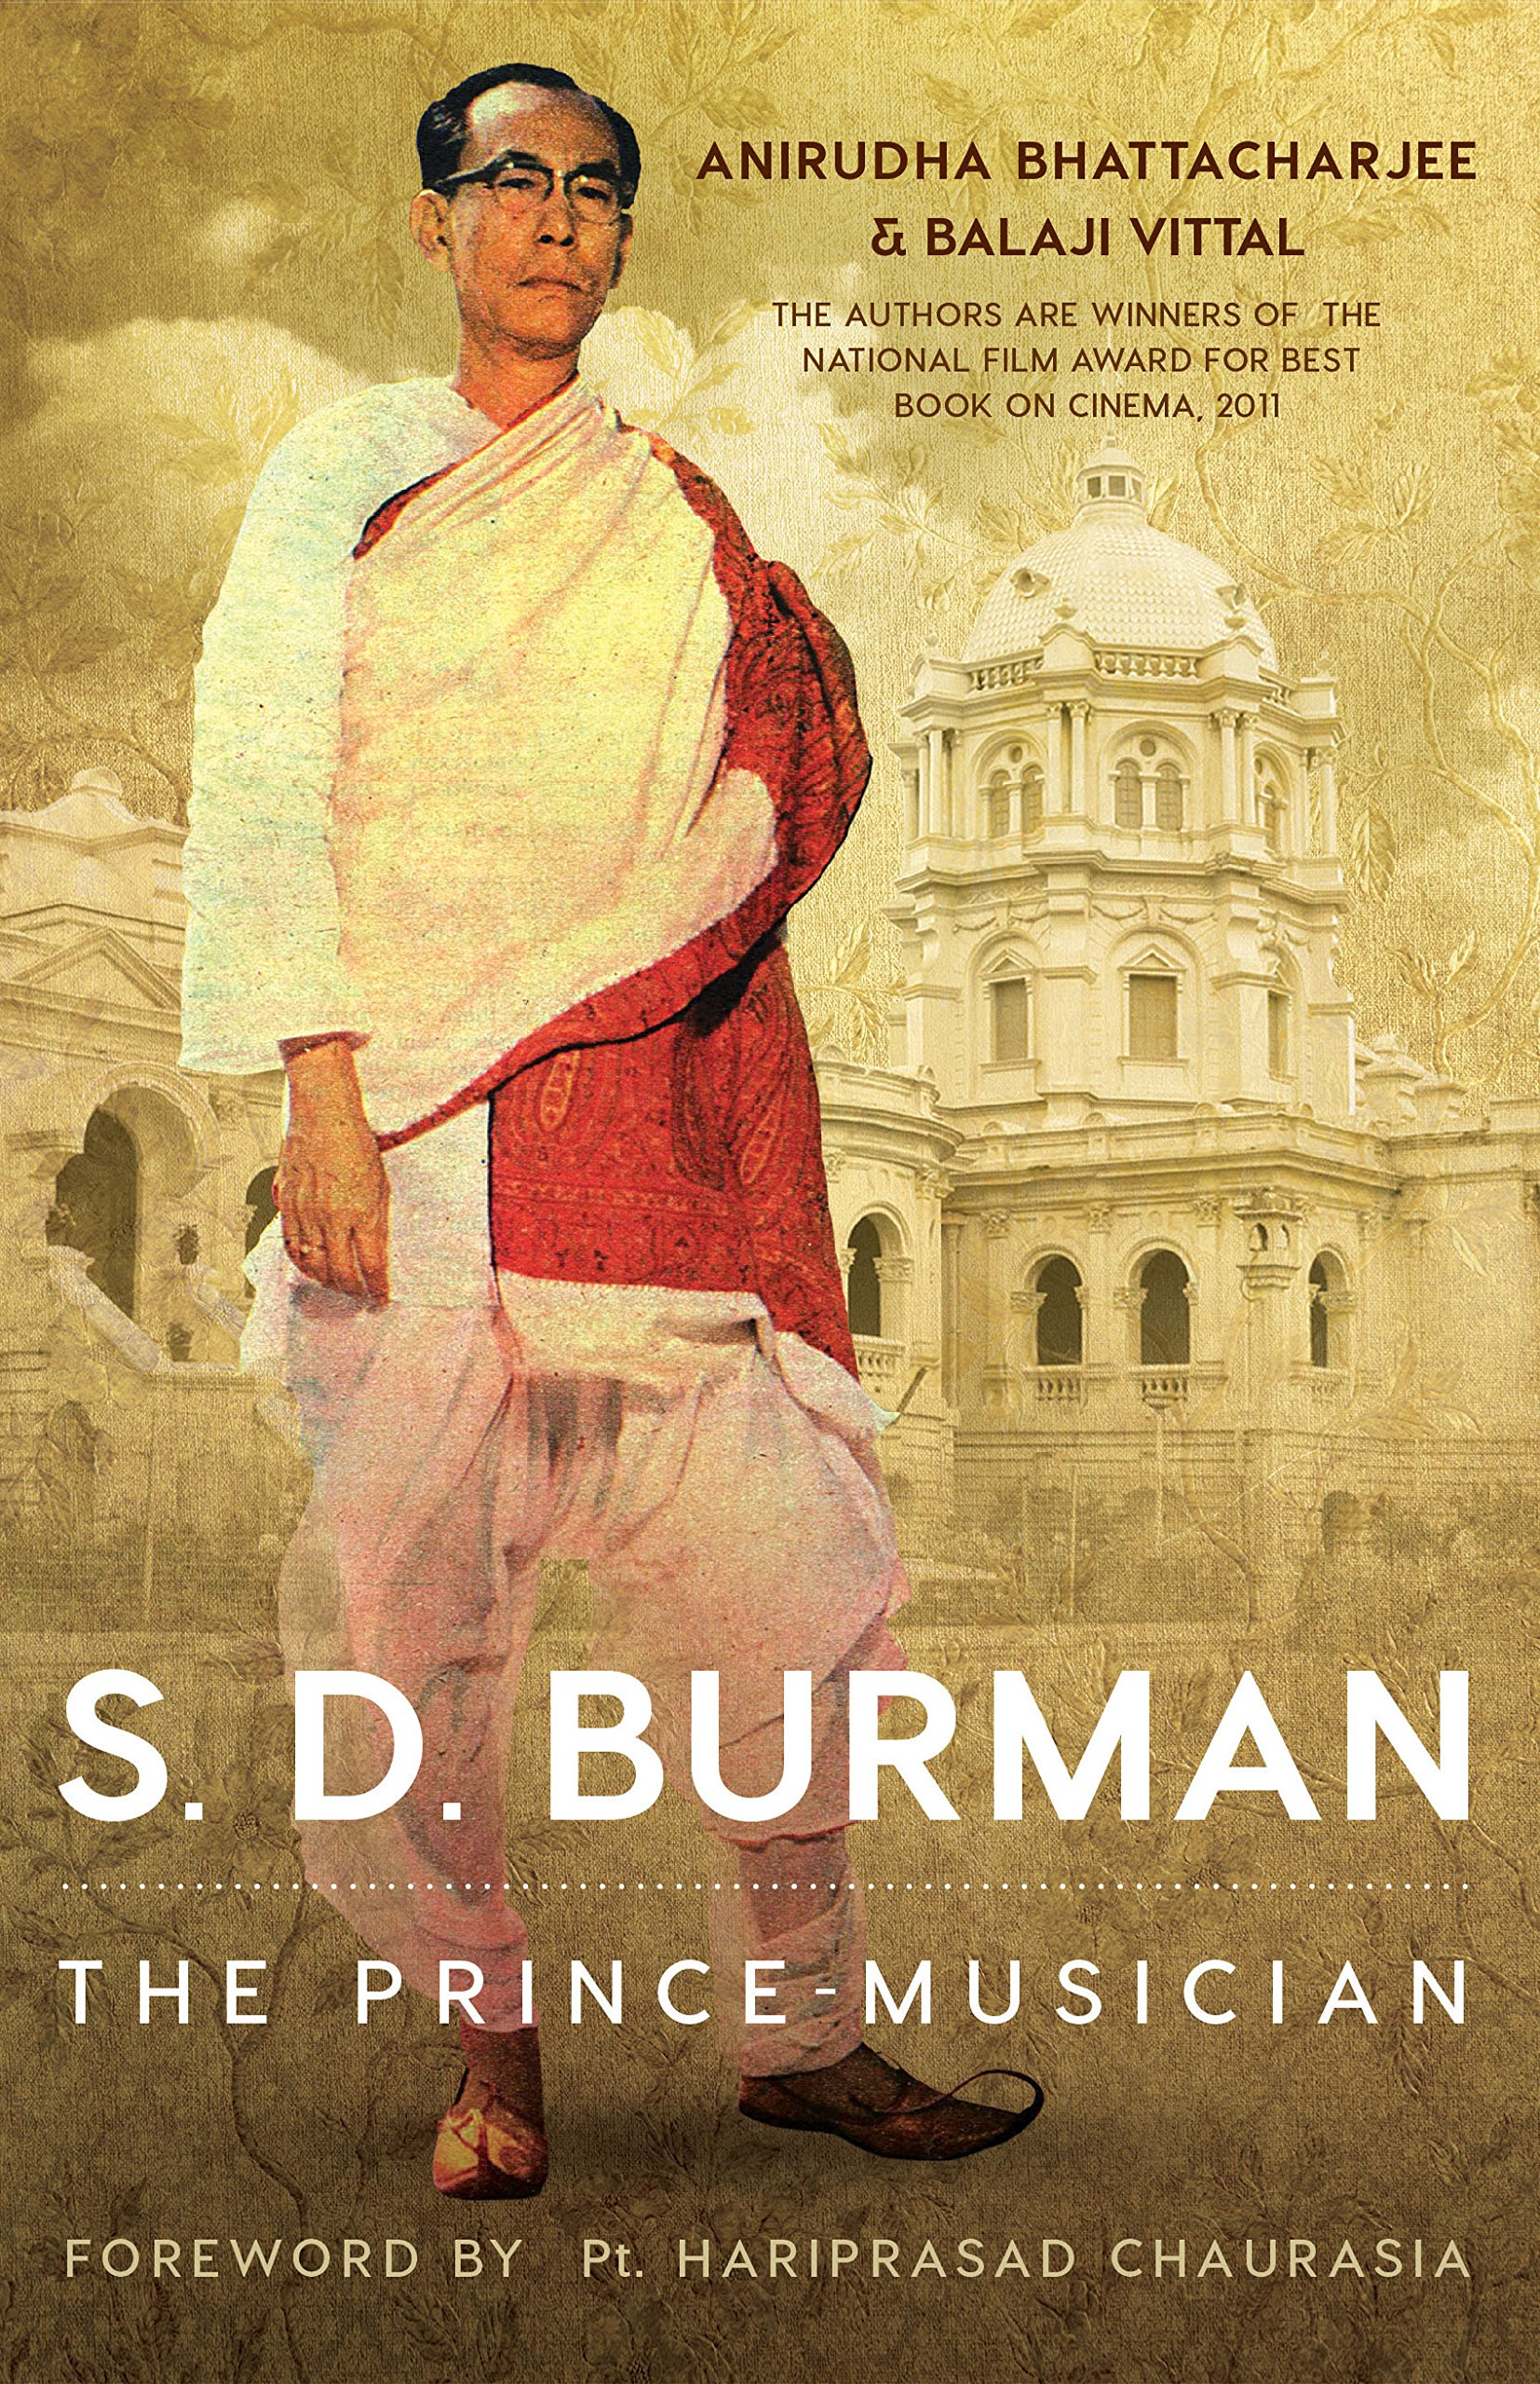 S. D. Burman: The Prince-Musician book